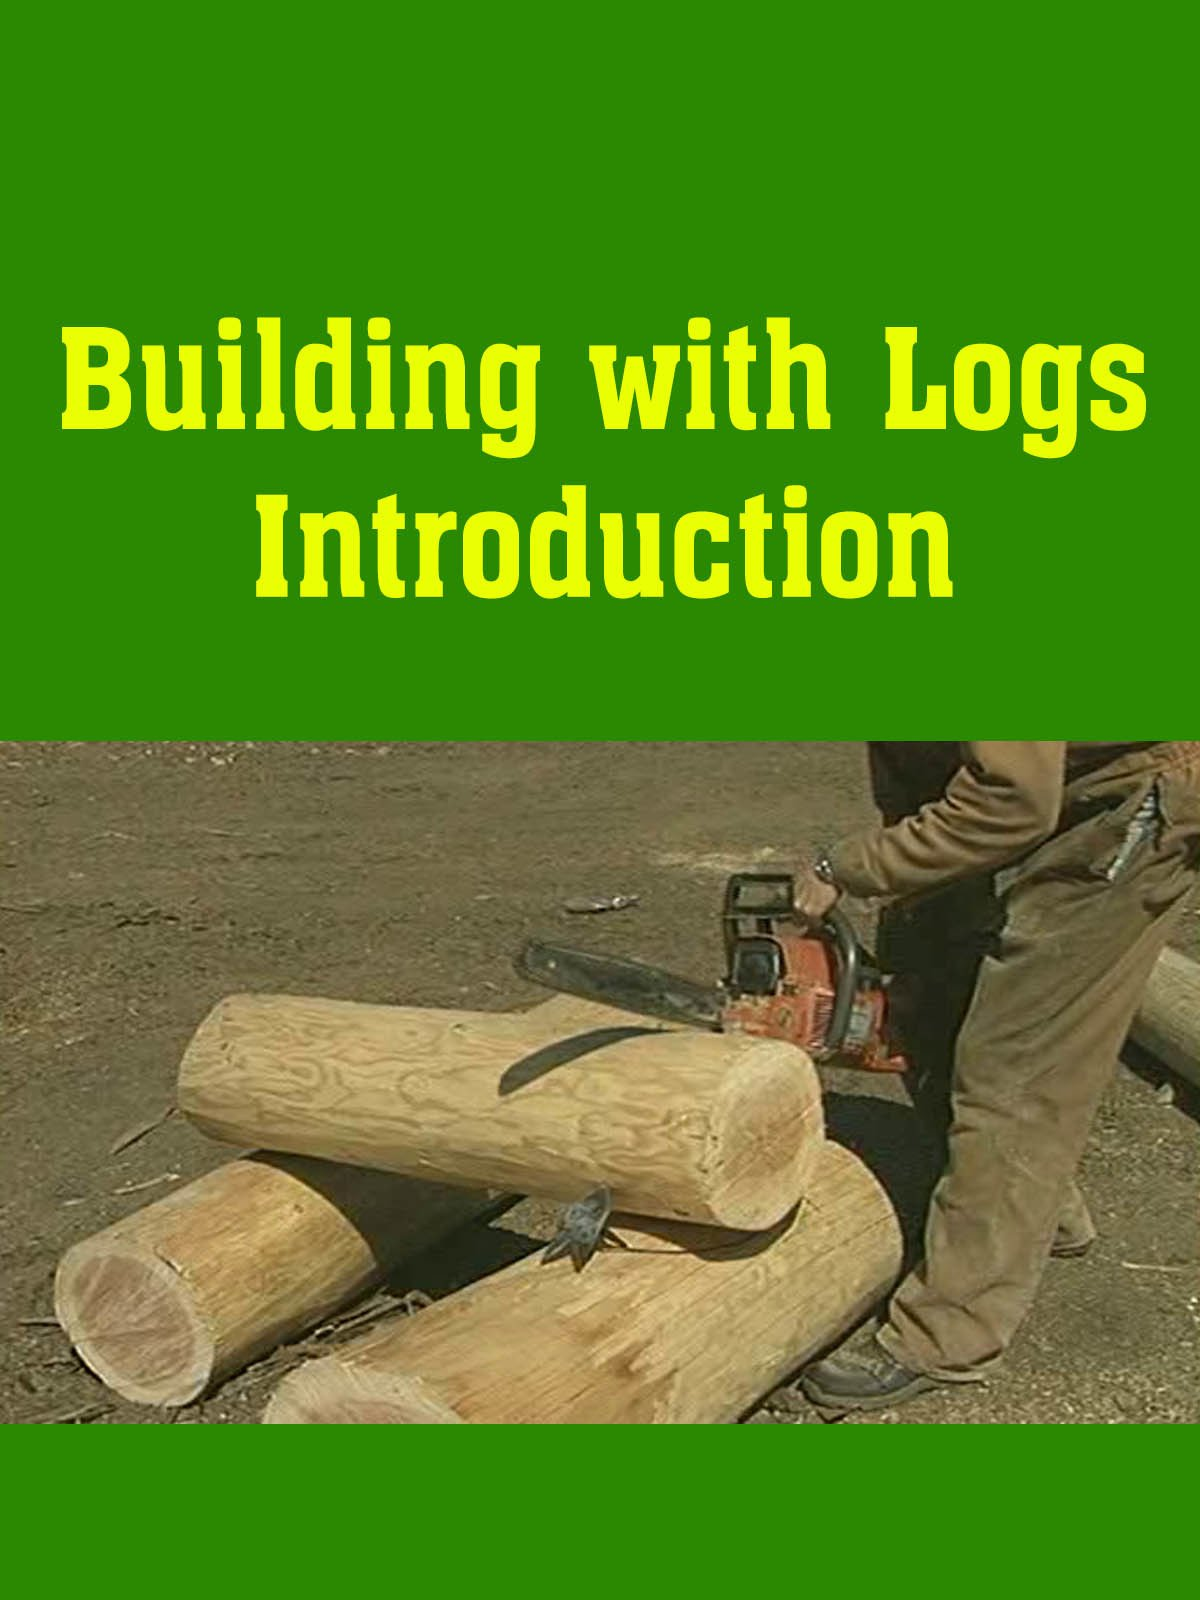 Building with Logs Introduction